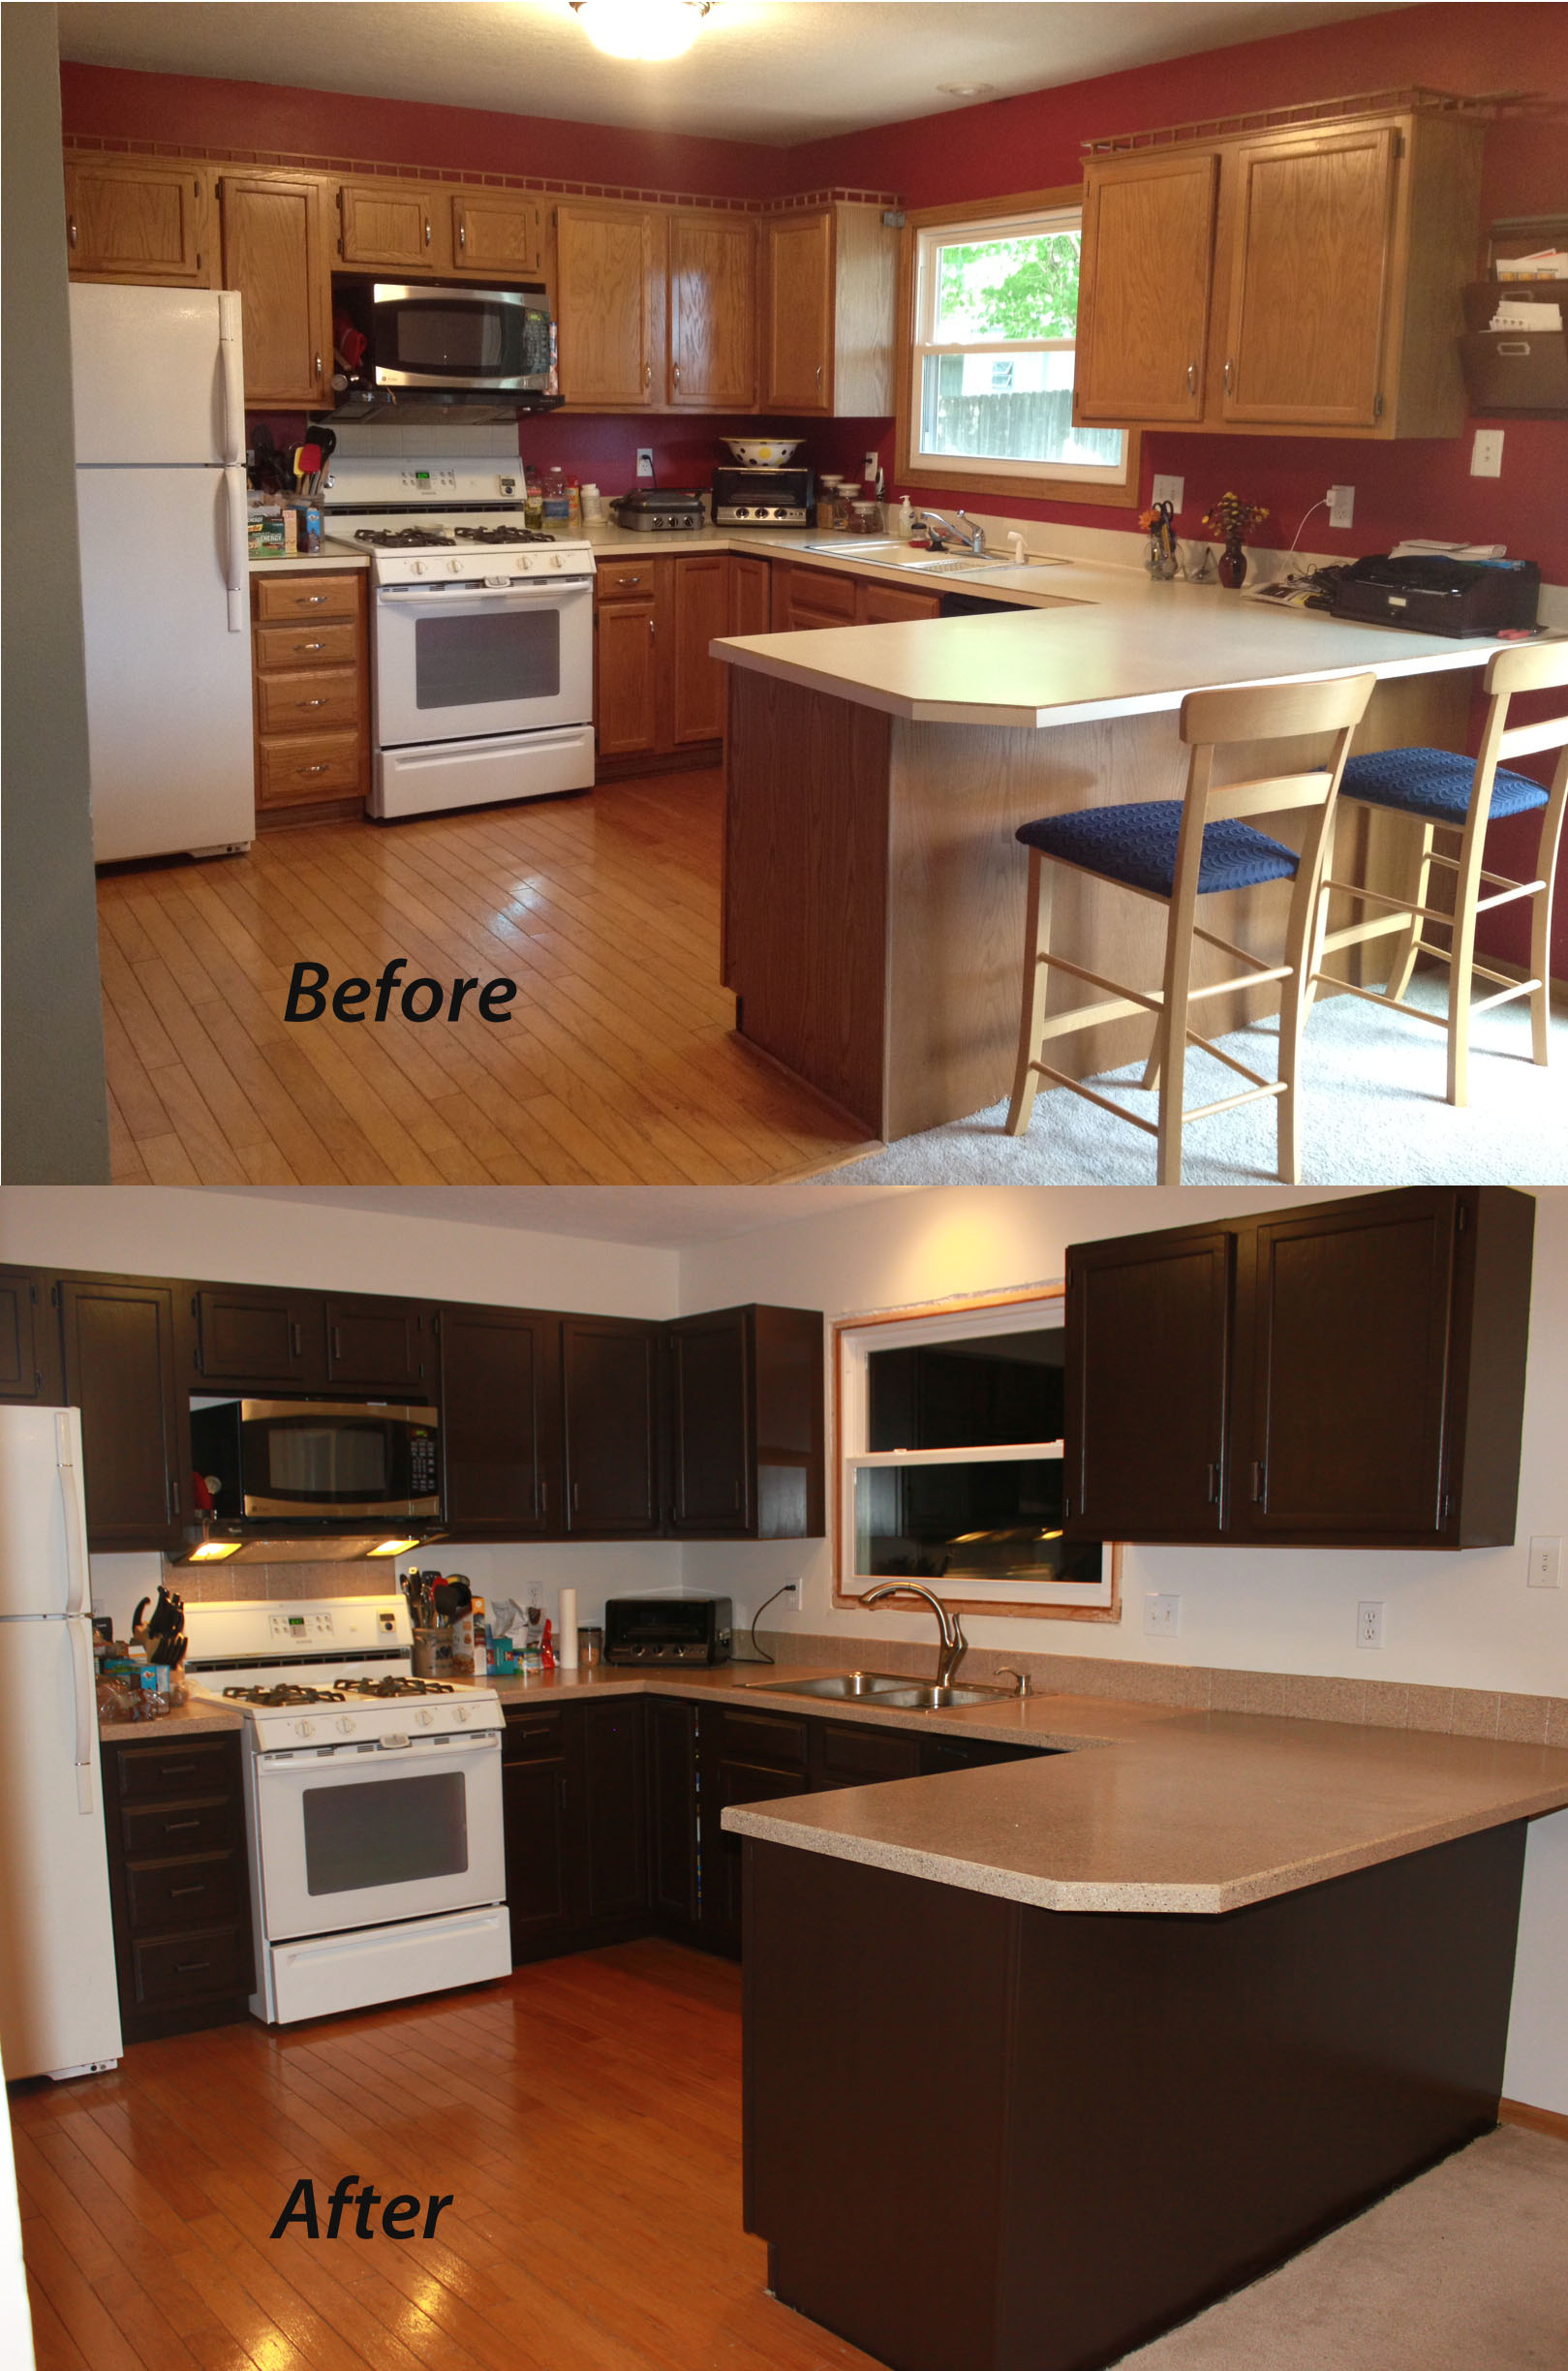 How To Paint Kitchen Cabinets In Mobile Home Painting Kitchen Cabinets Sometimes Homemade